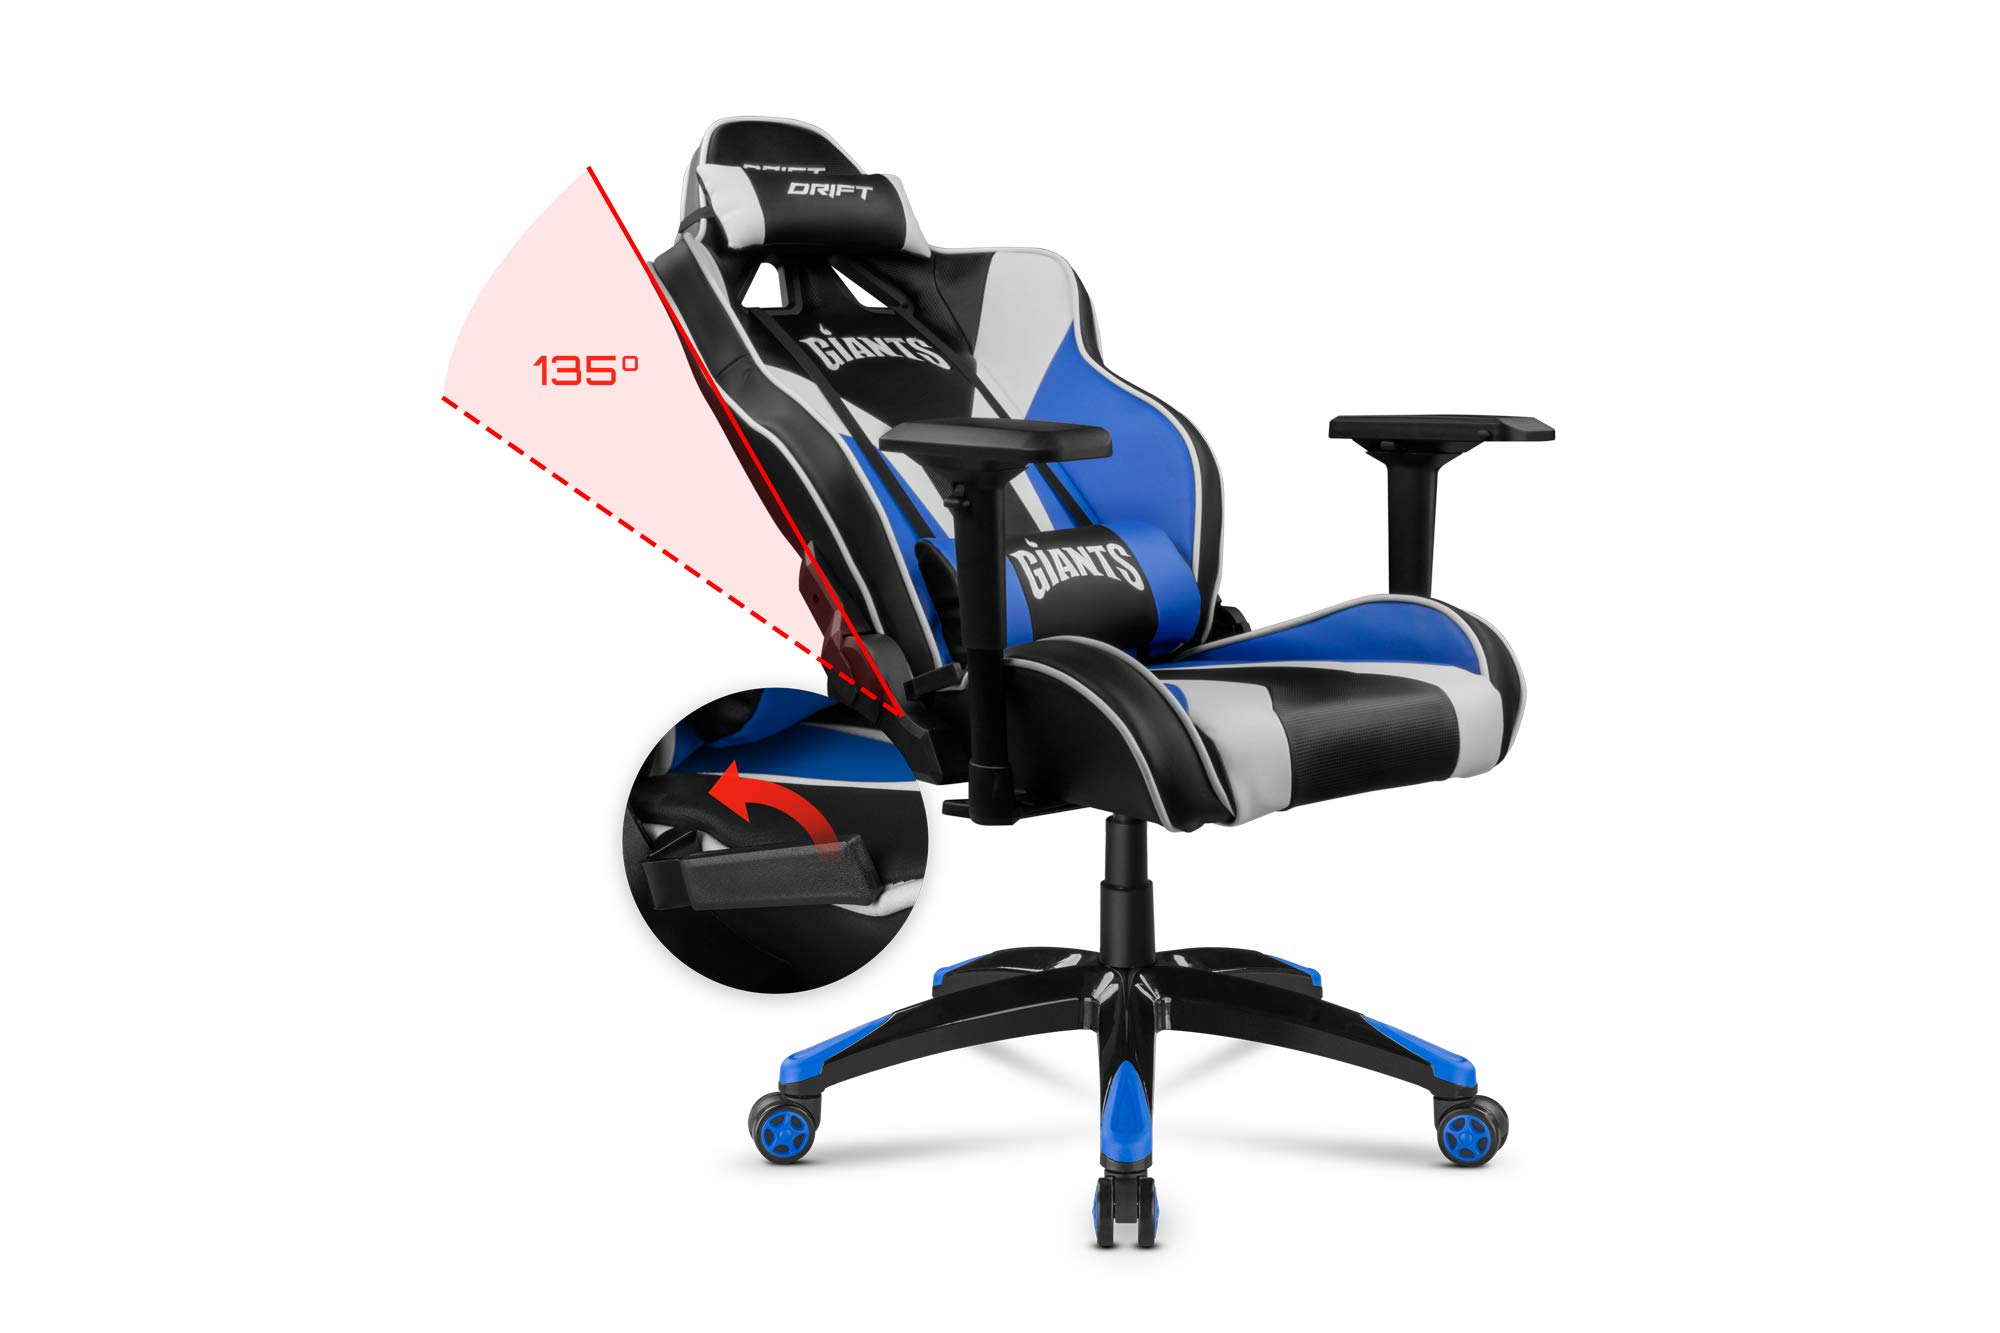 Drift Giants - DRGIANTS - Silla Gaming, Color Negro, Azul y Blanco ...